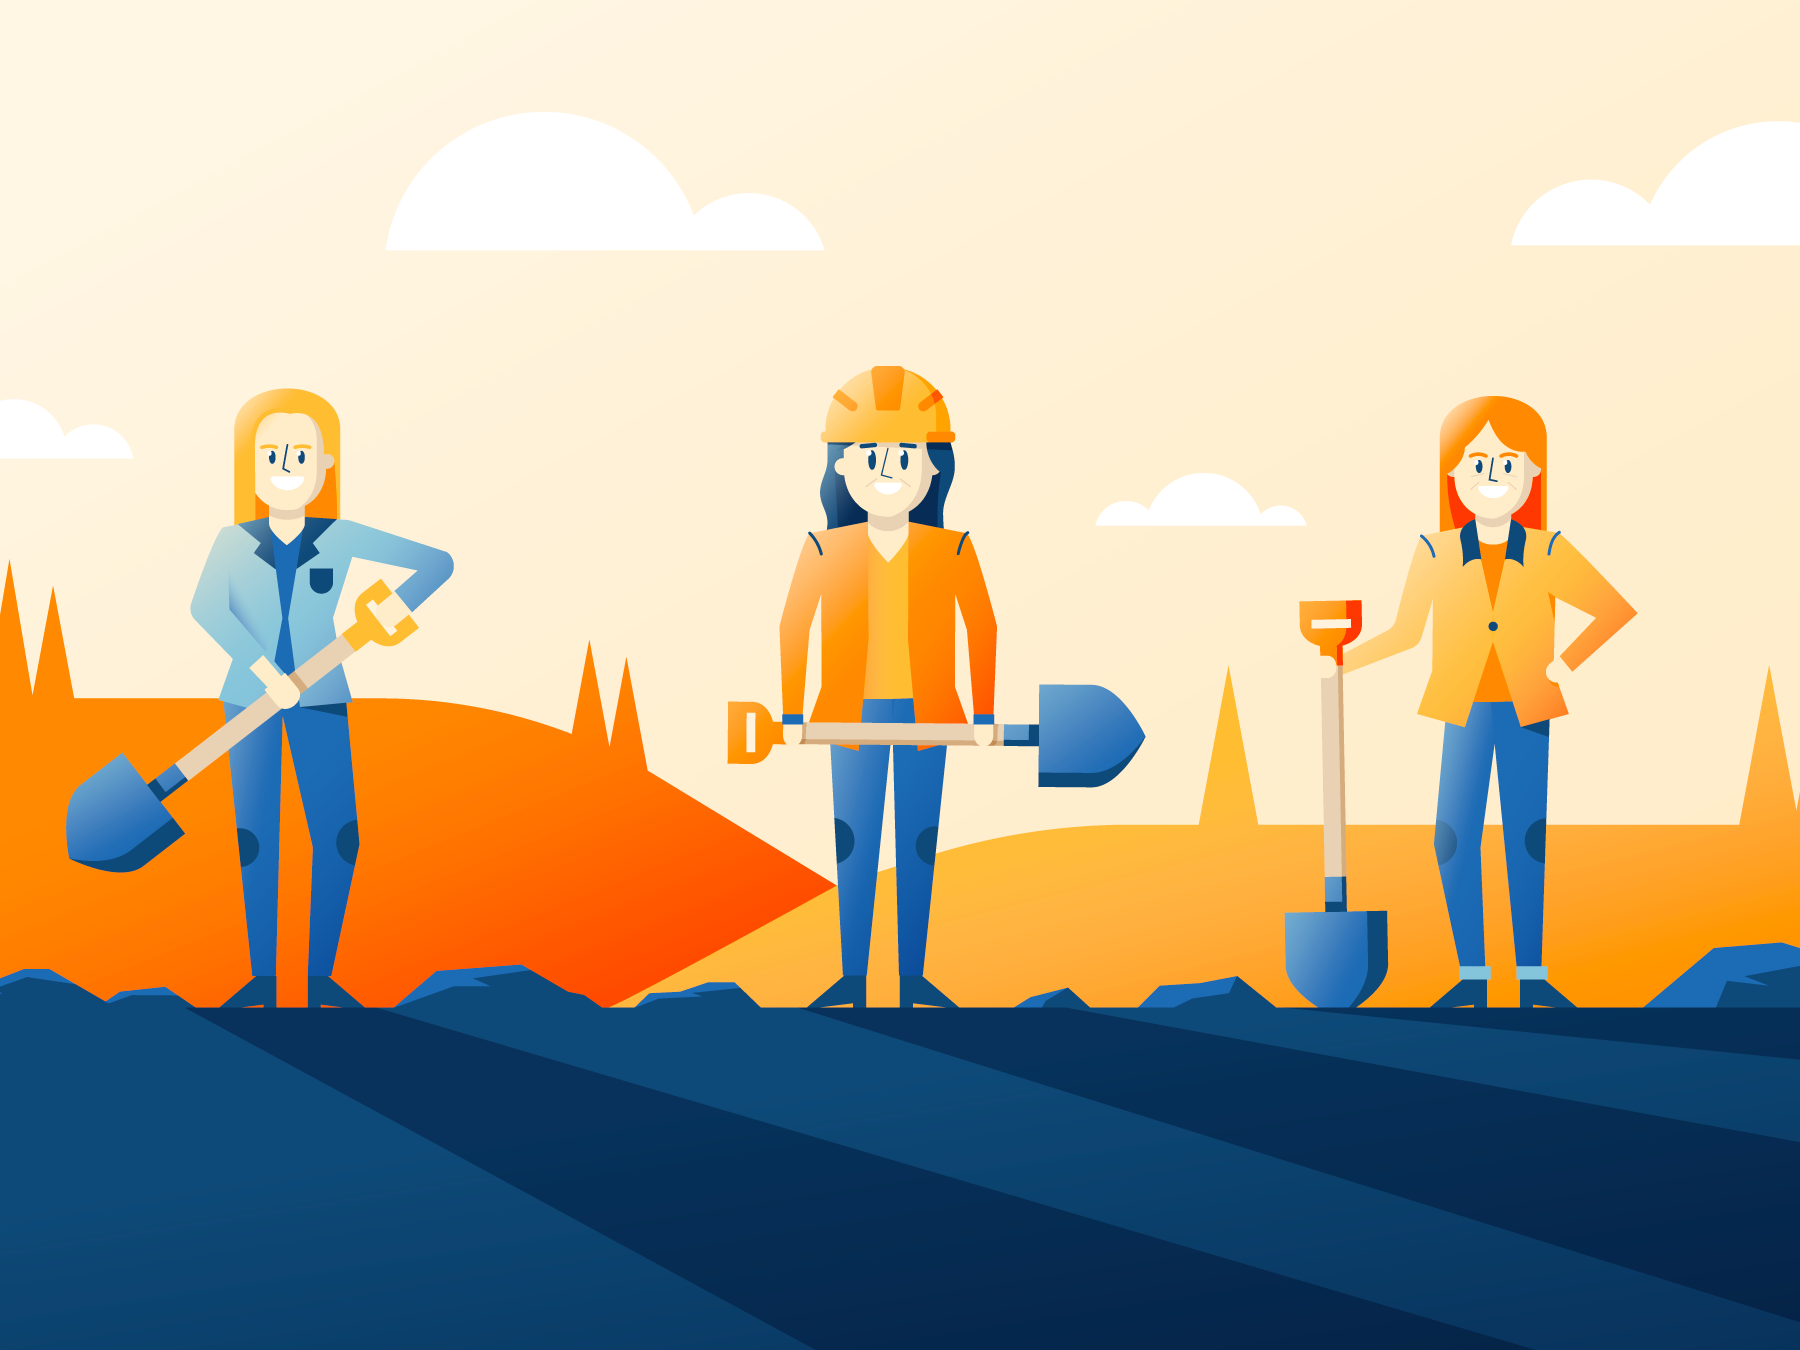 Women in Construction: The State of the Industry in 2021